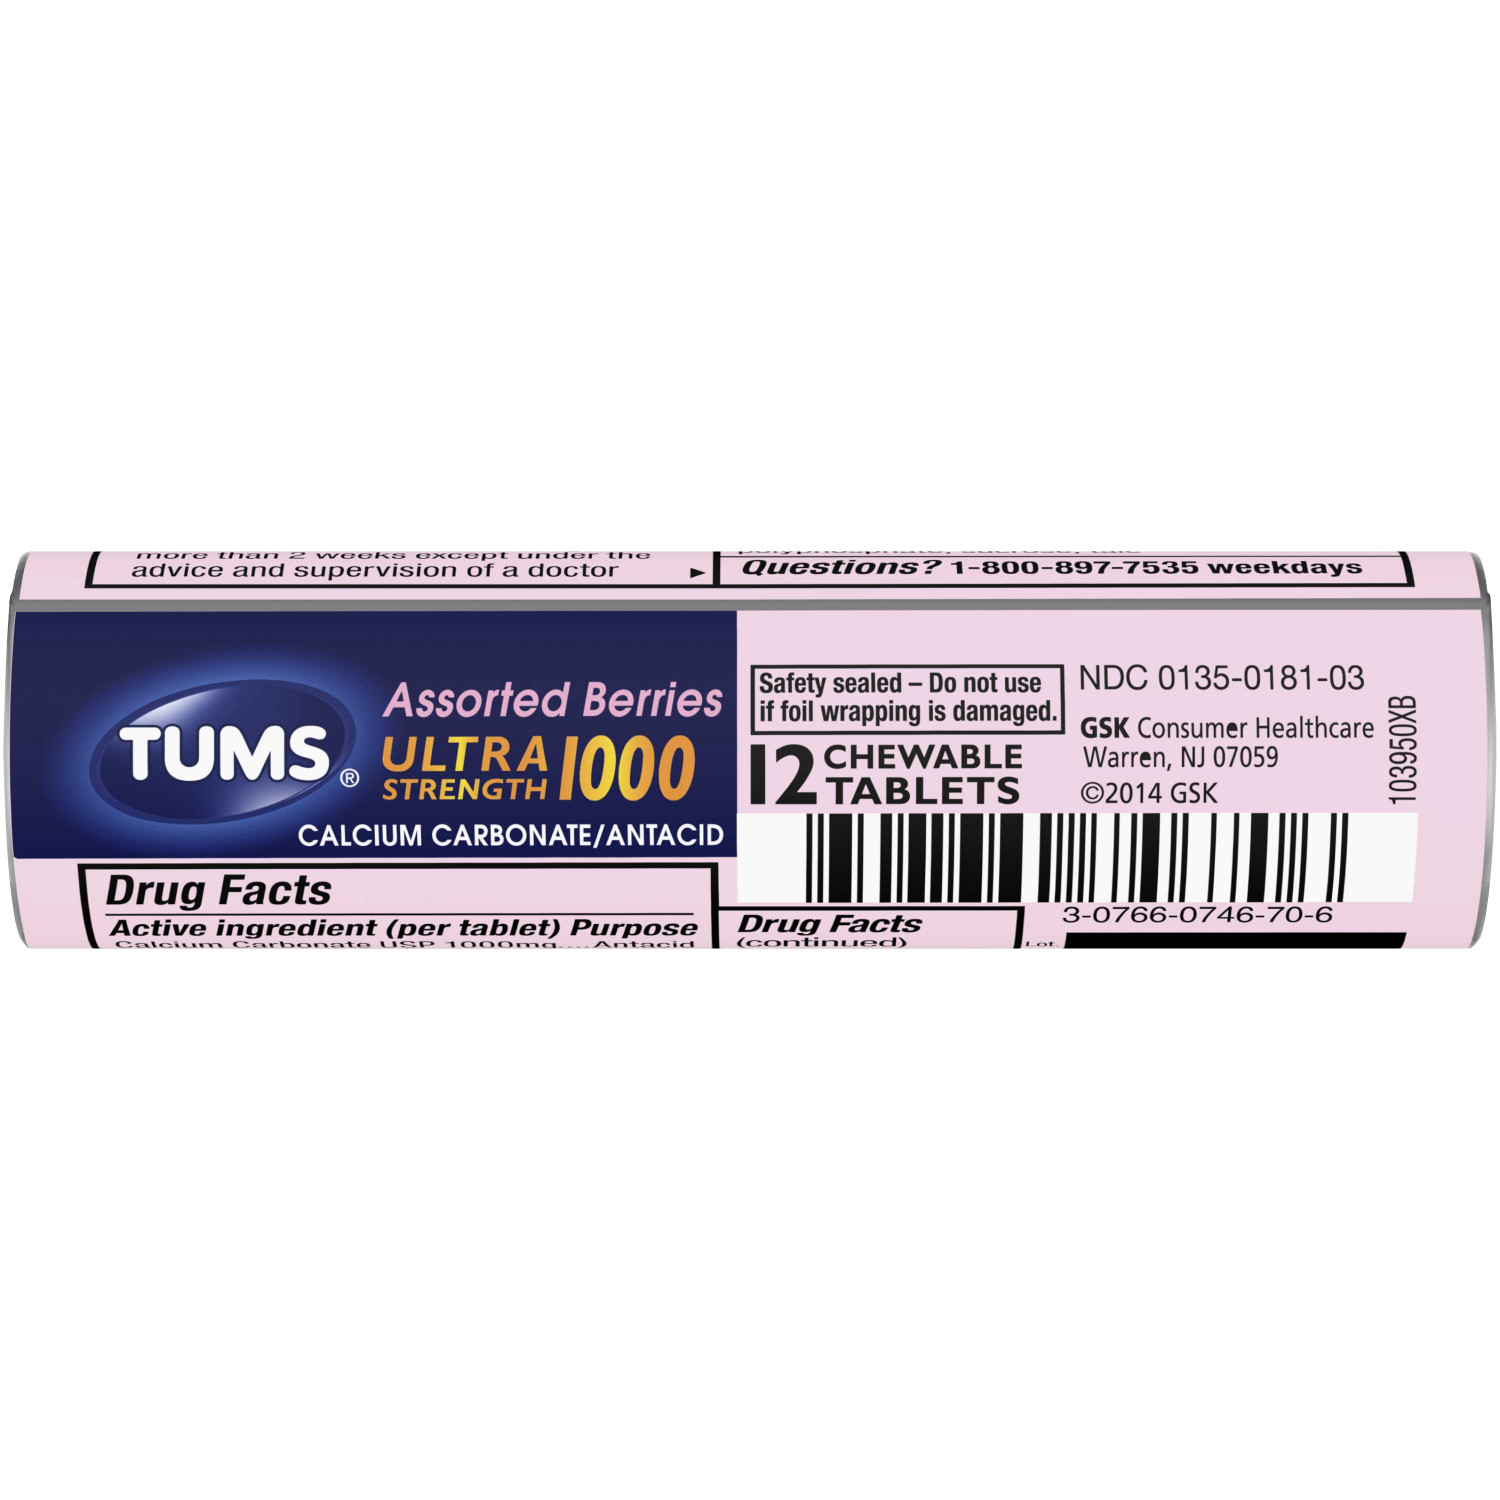 (4 Pack) TUMS Antacid Chewable Tablets for Heartburn Relief, Ultra Strength, Assorted Berries, 12 Tablets